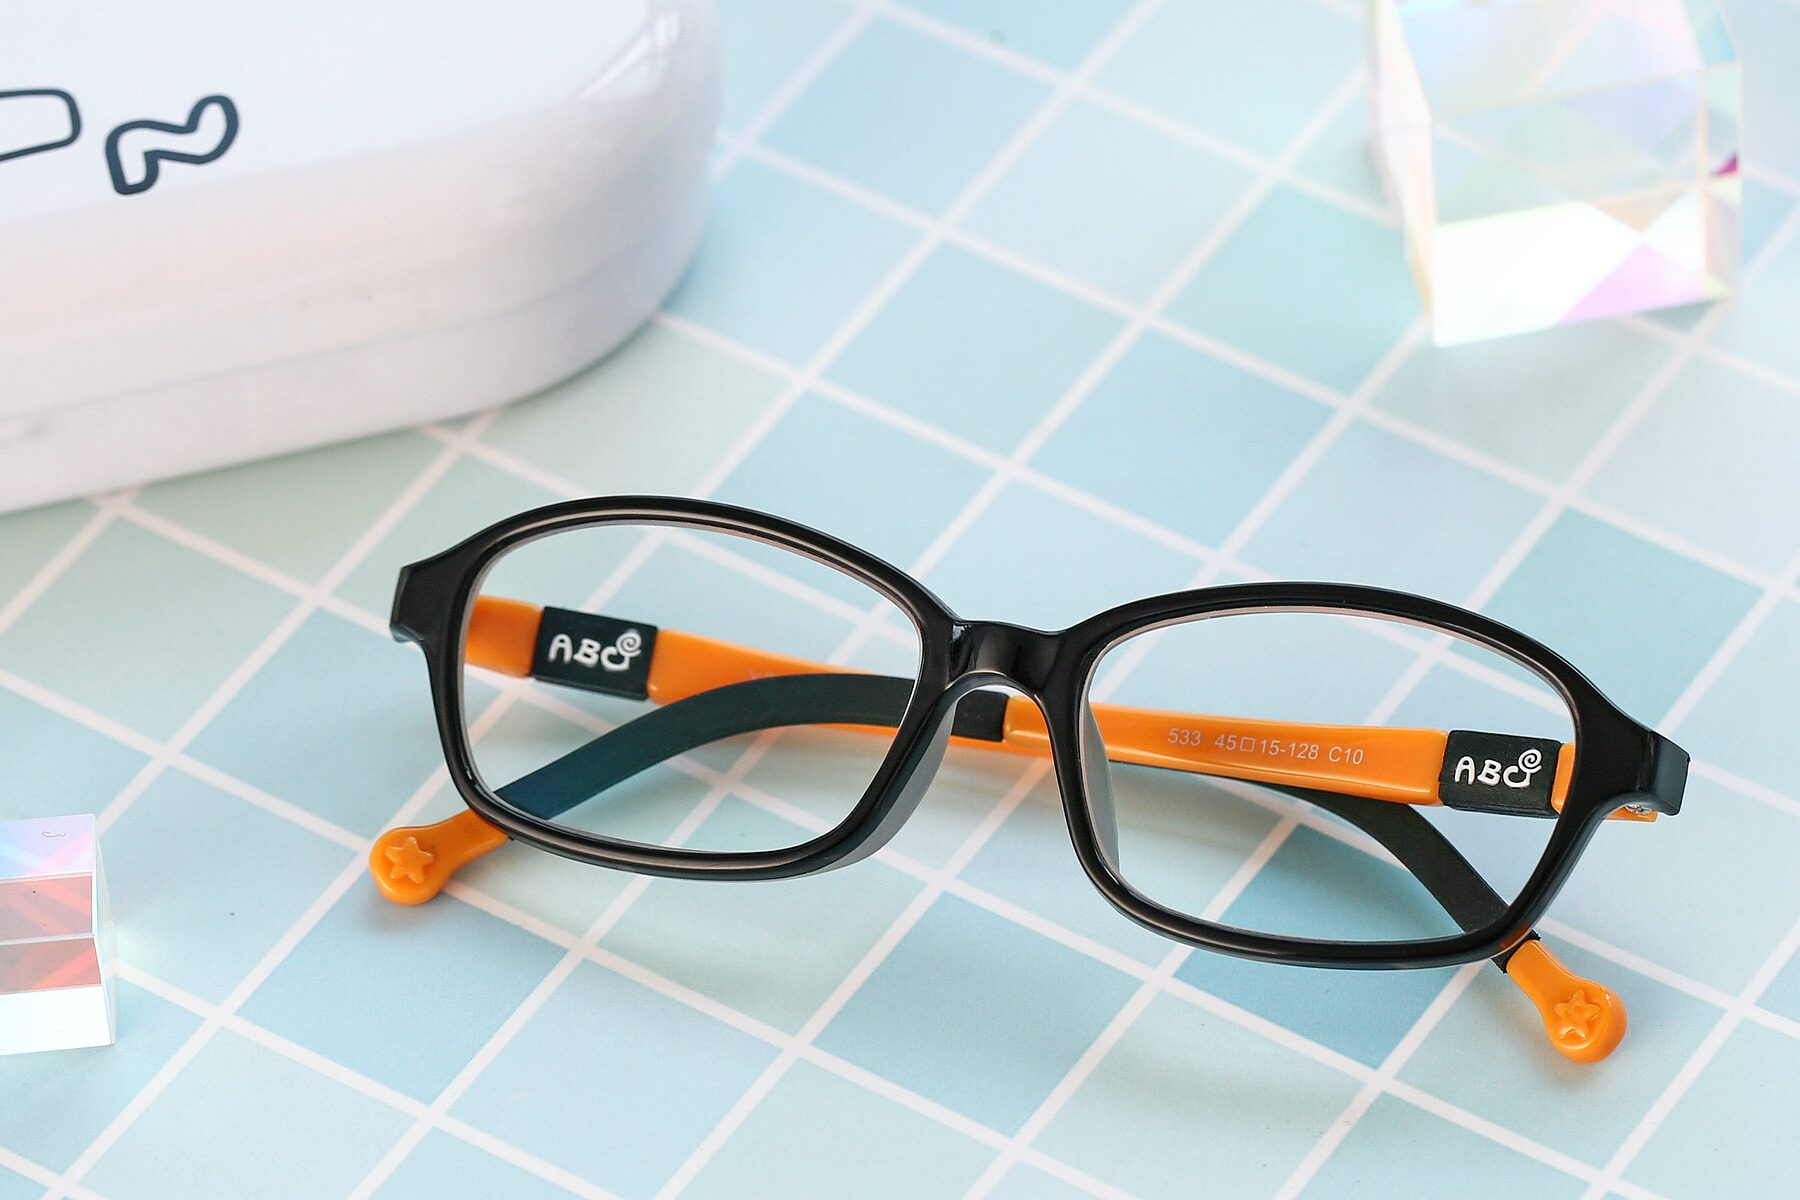 Lifestyle photography #1 of 533 in Black-Orange with Clear Eyeglass Lenses